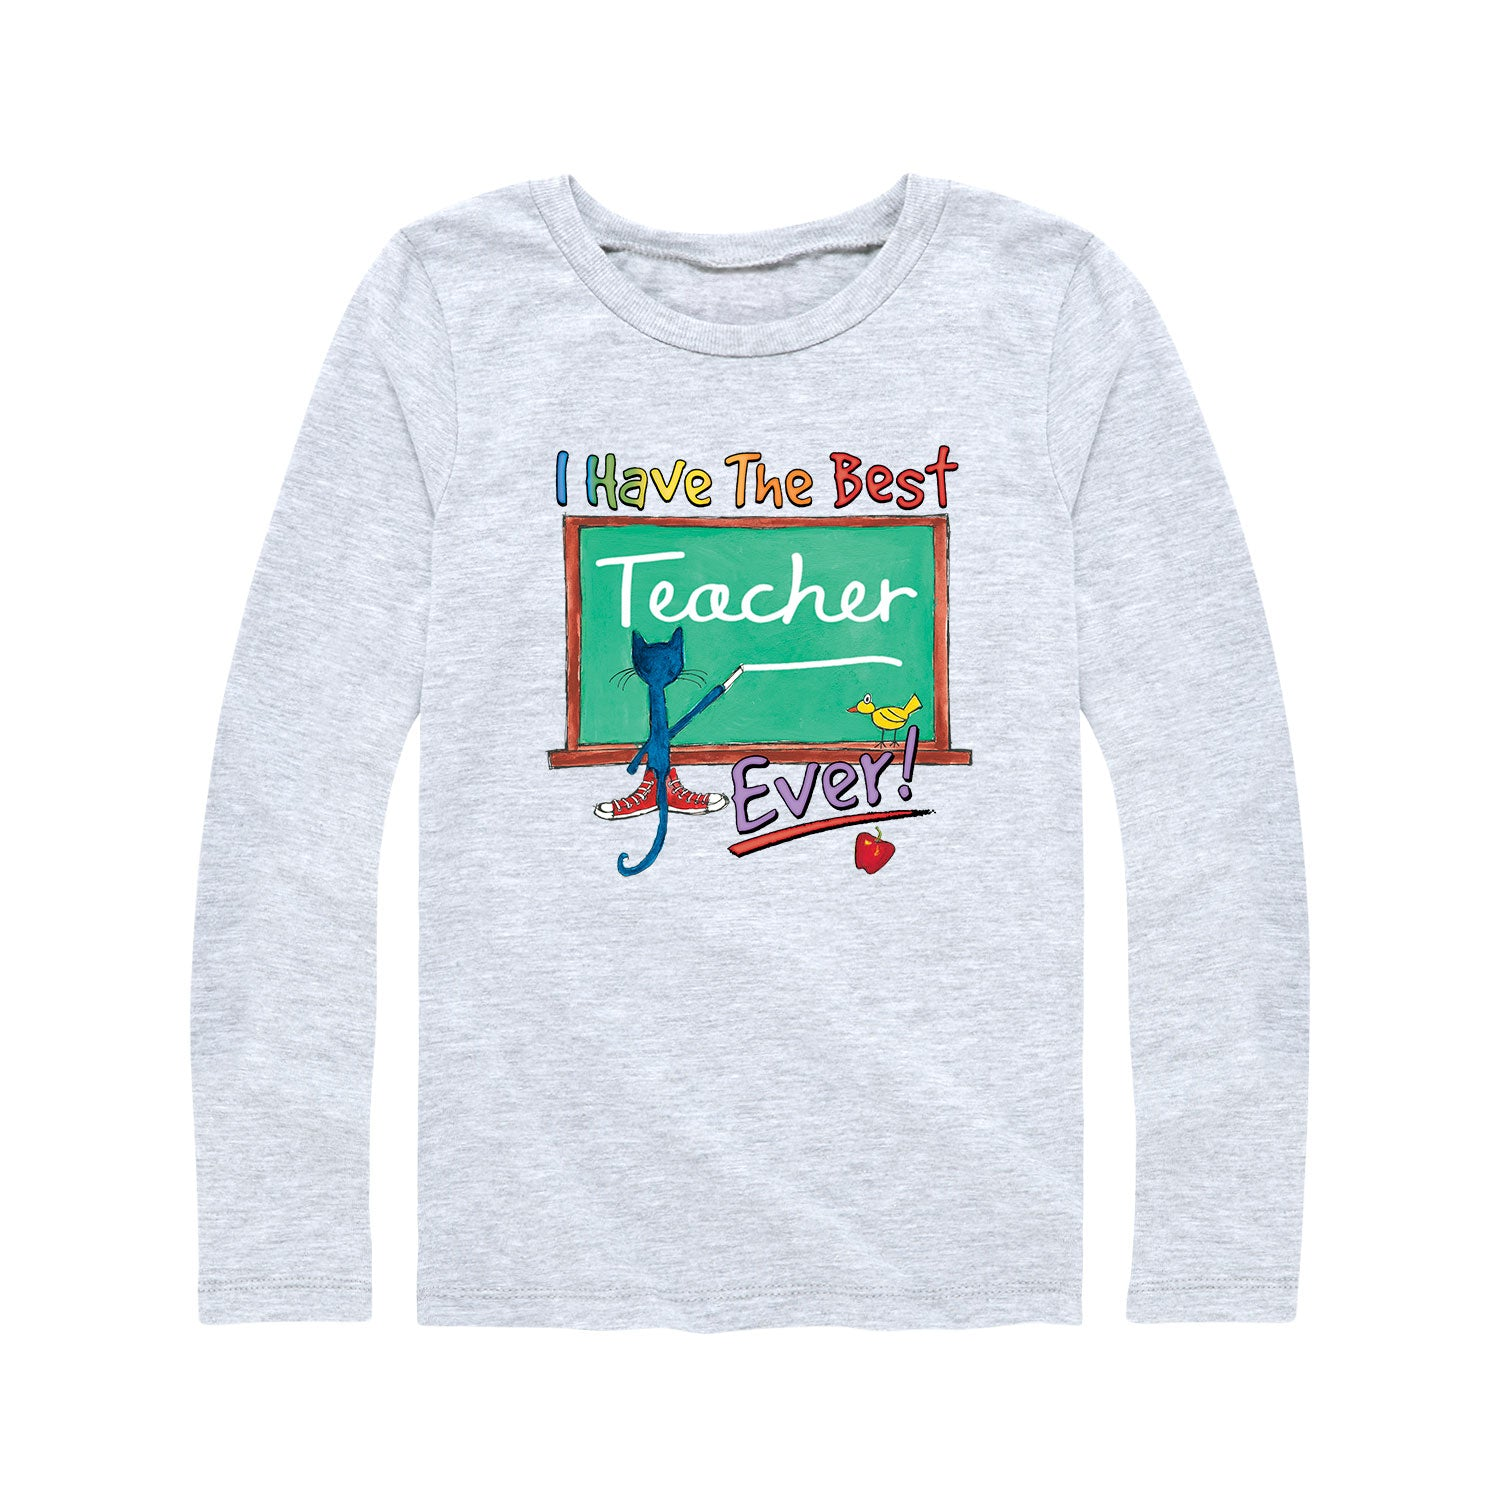 Pete The Cat I Have The Best Teacher Ever - Youth Girl Long Sleeve T-Shirt